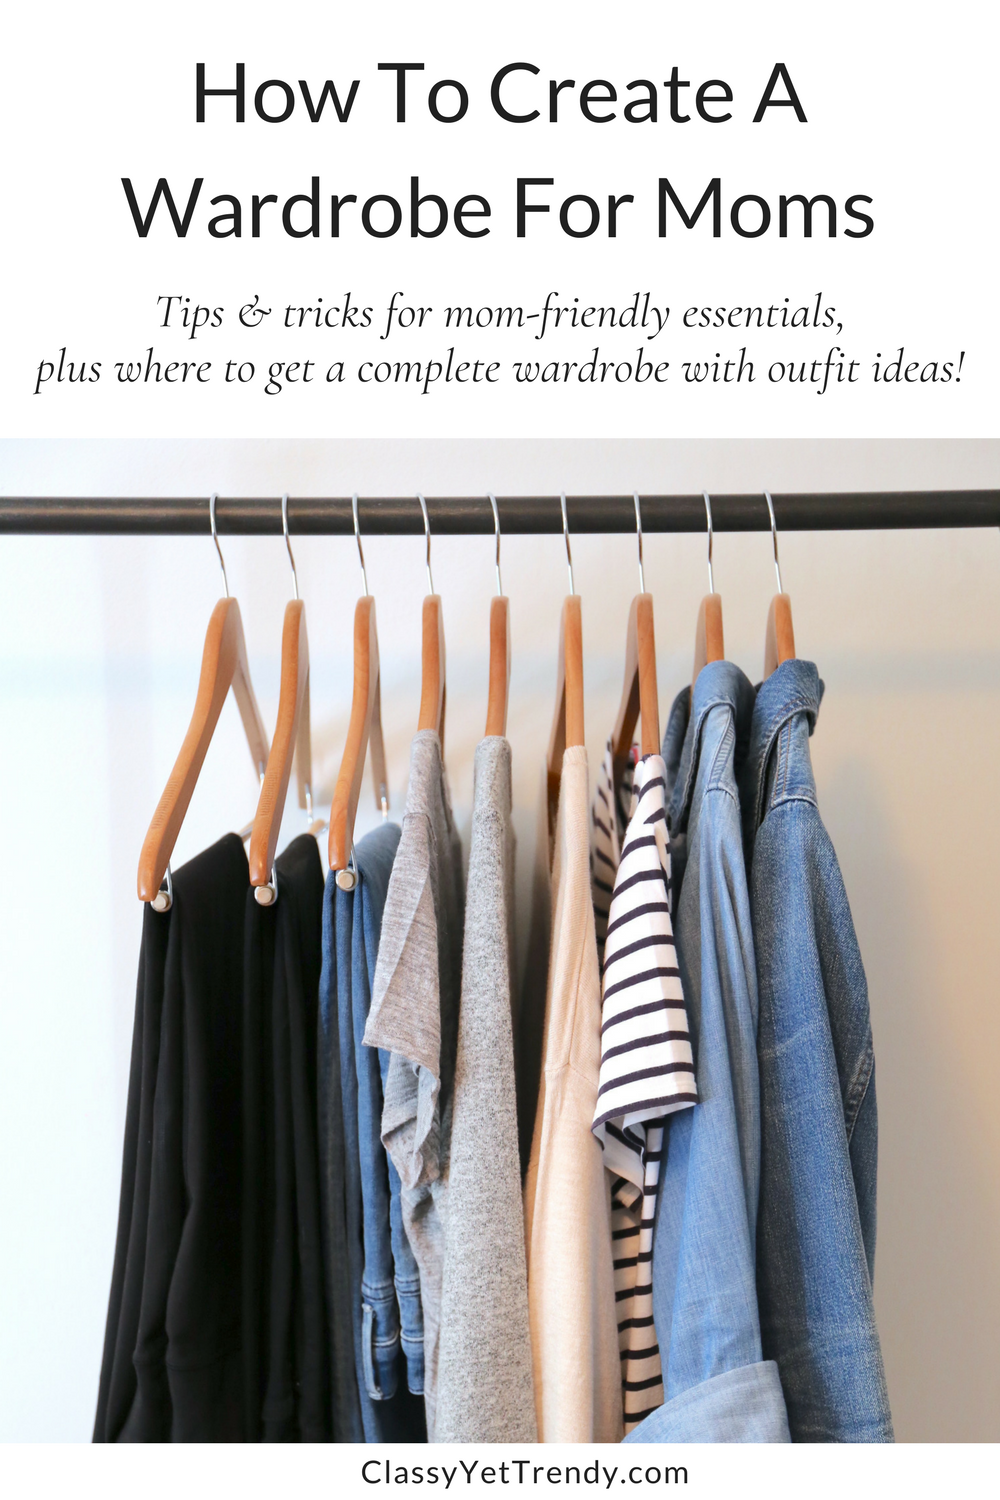 How To Create a Wardrobe For Moms